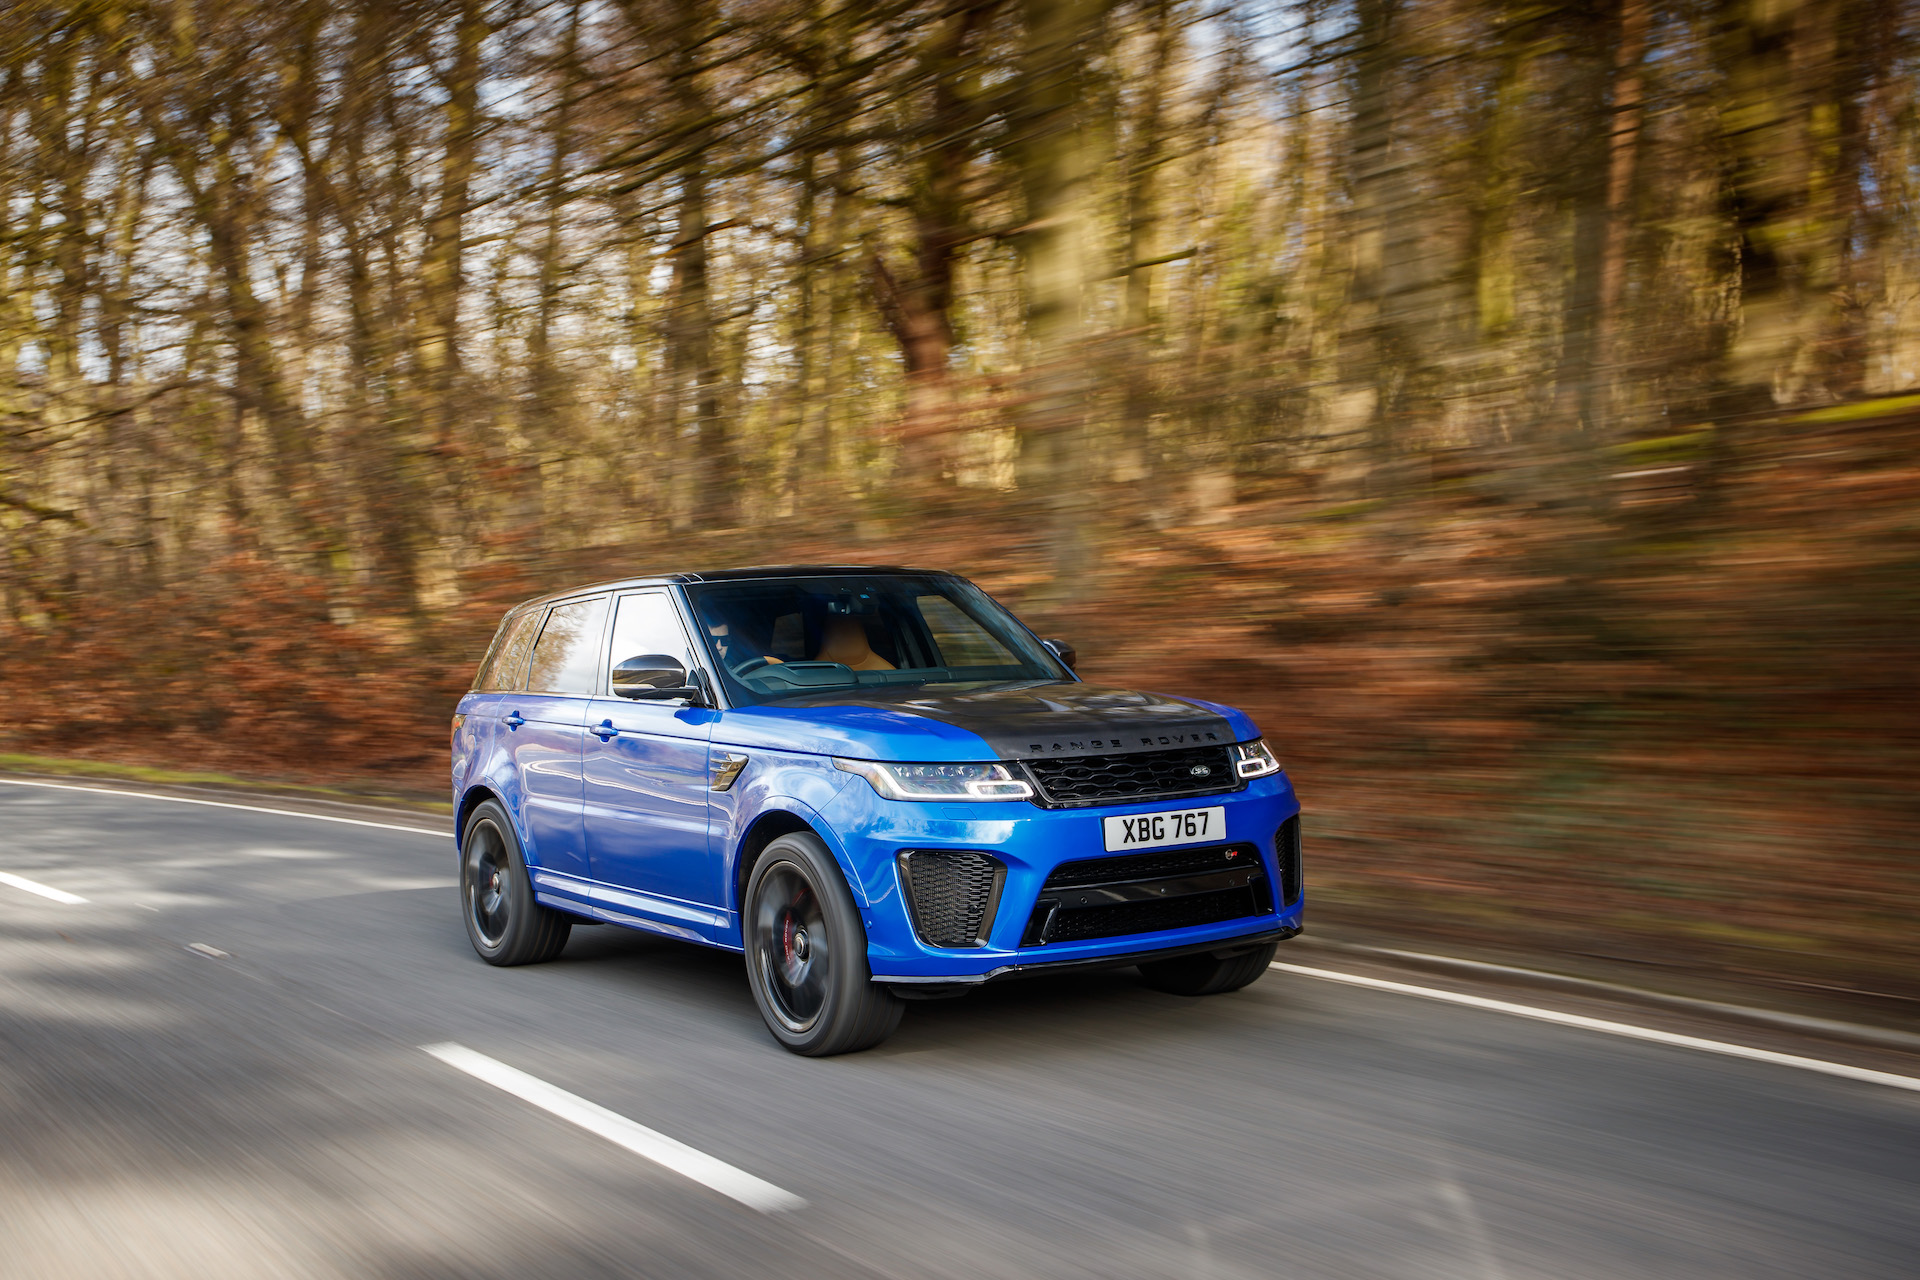 Is the Range Rover SVR a future classic?